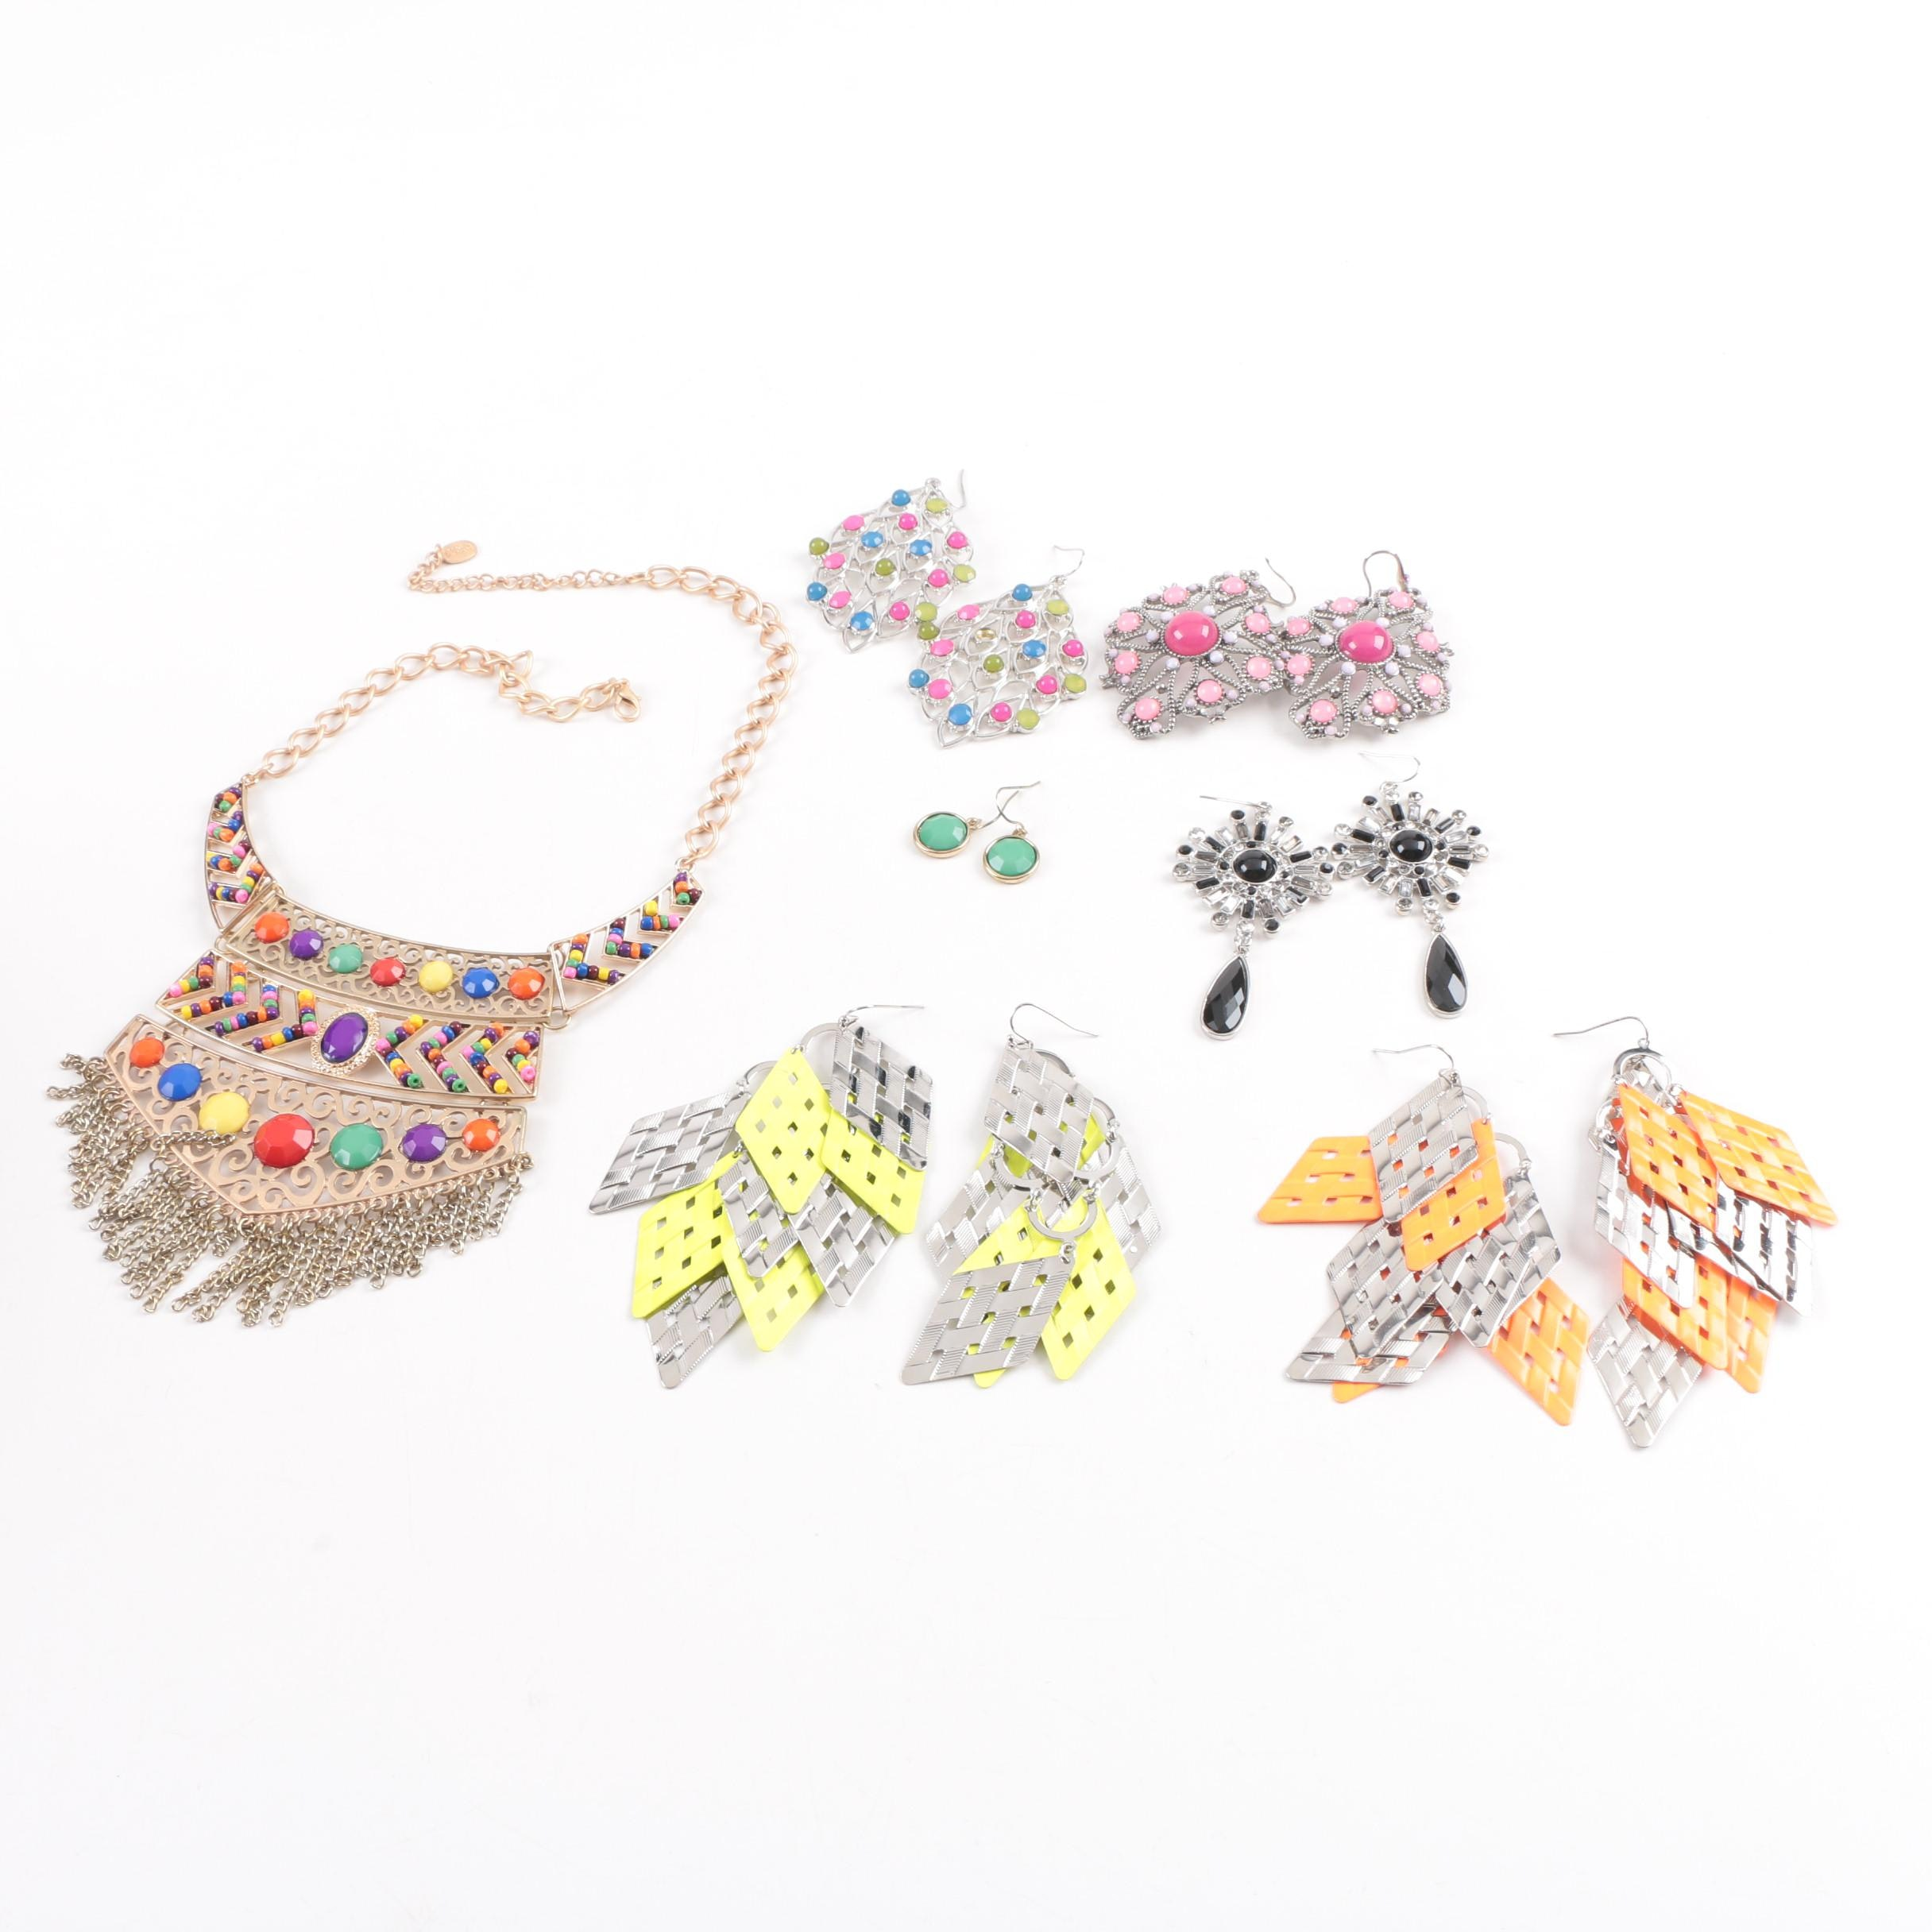 Assortment of Colorful Contemporary Jewelry